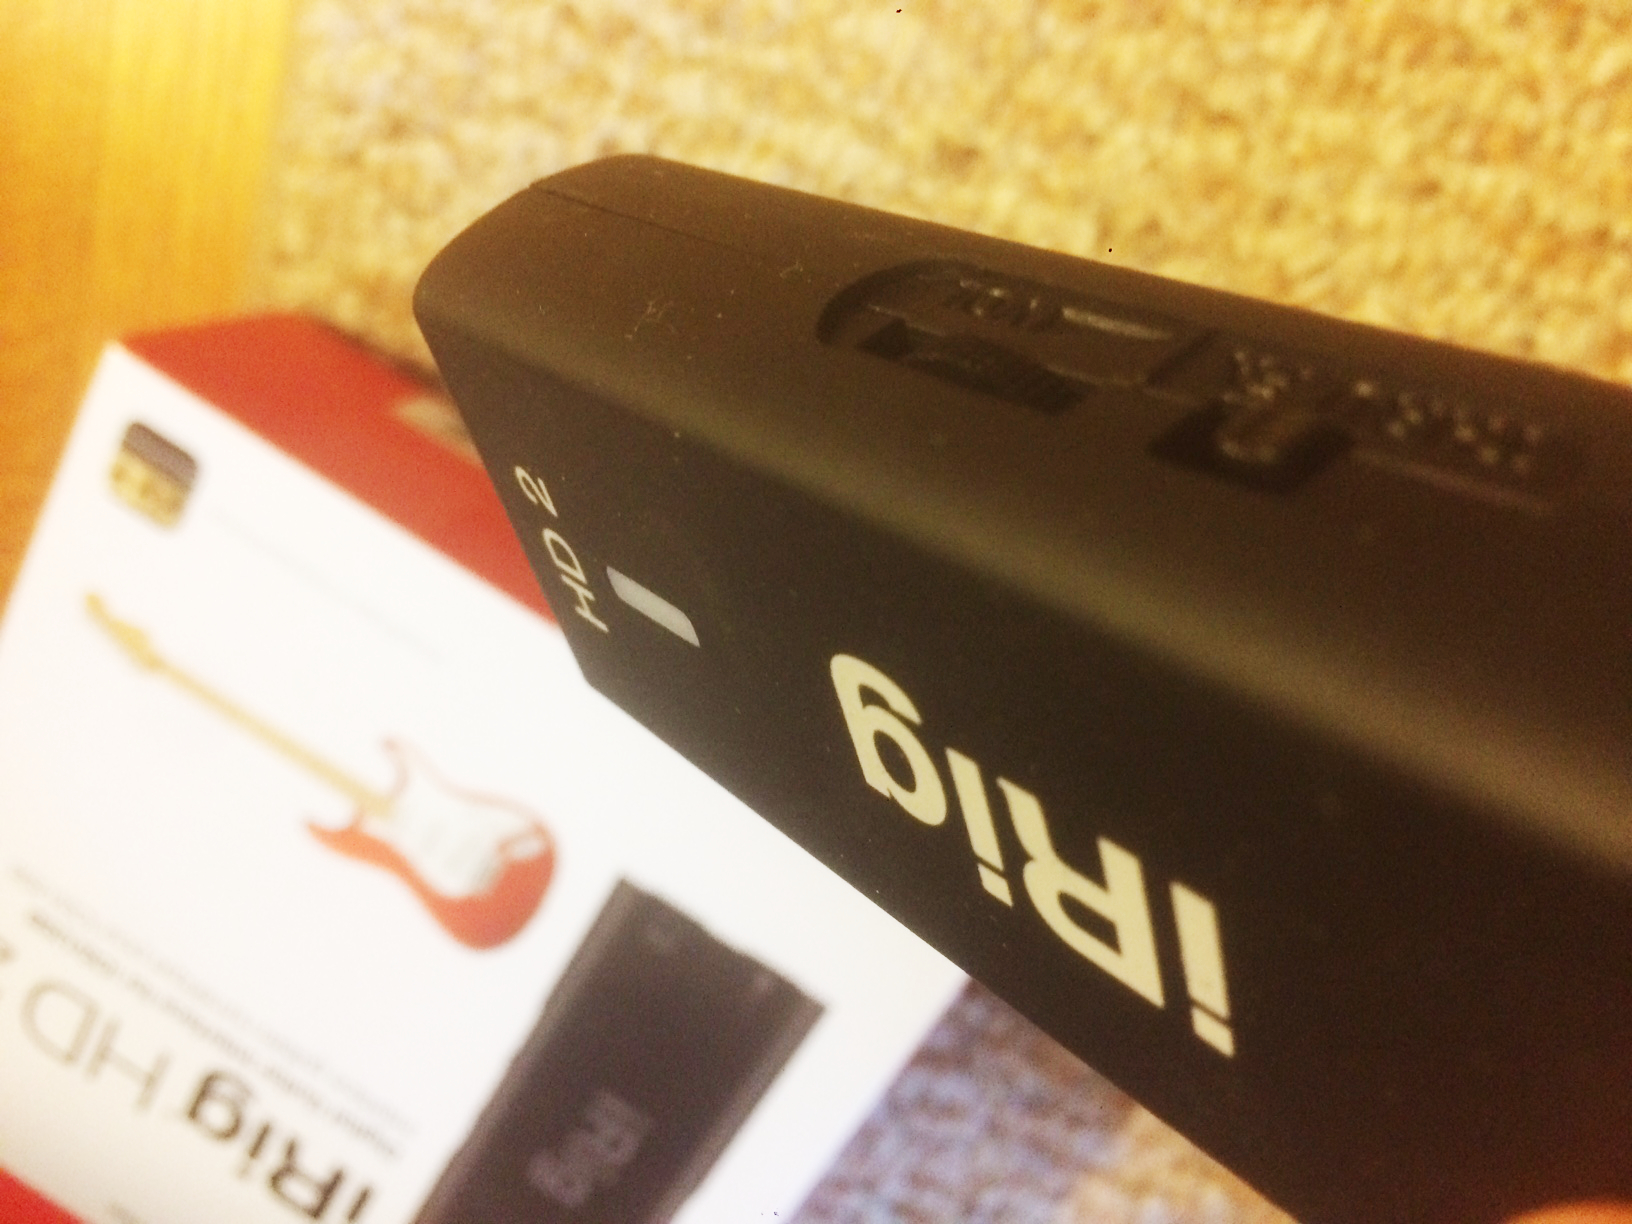 iRig HD 2 Volume Control